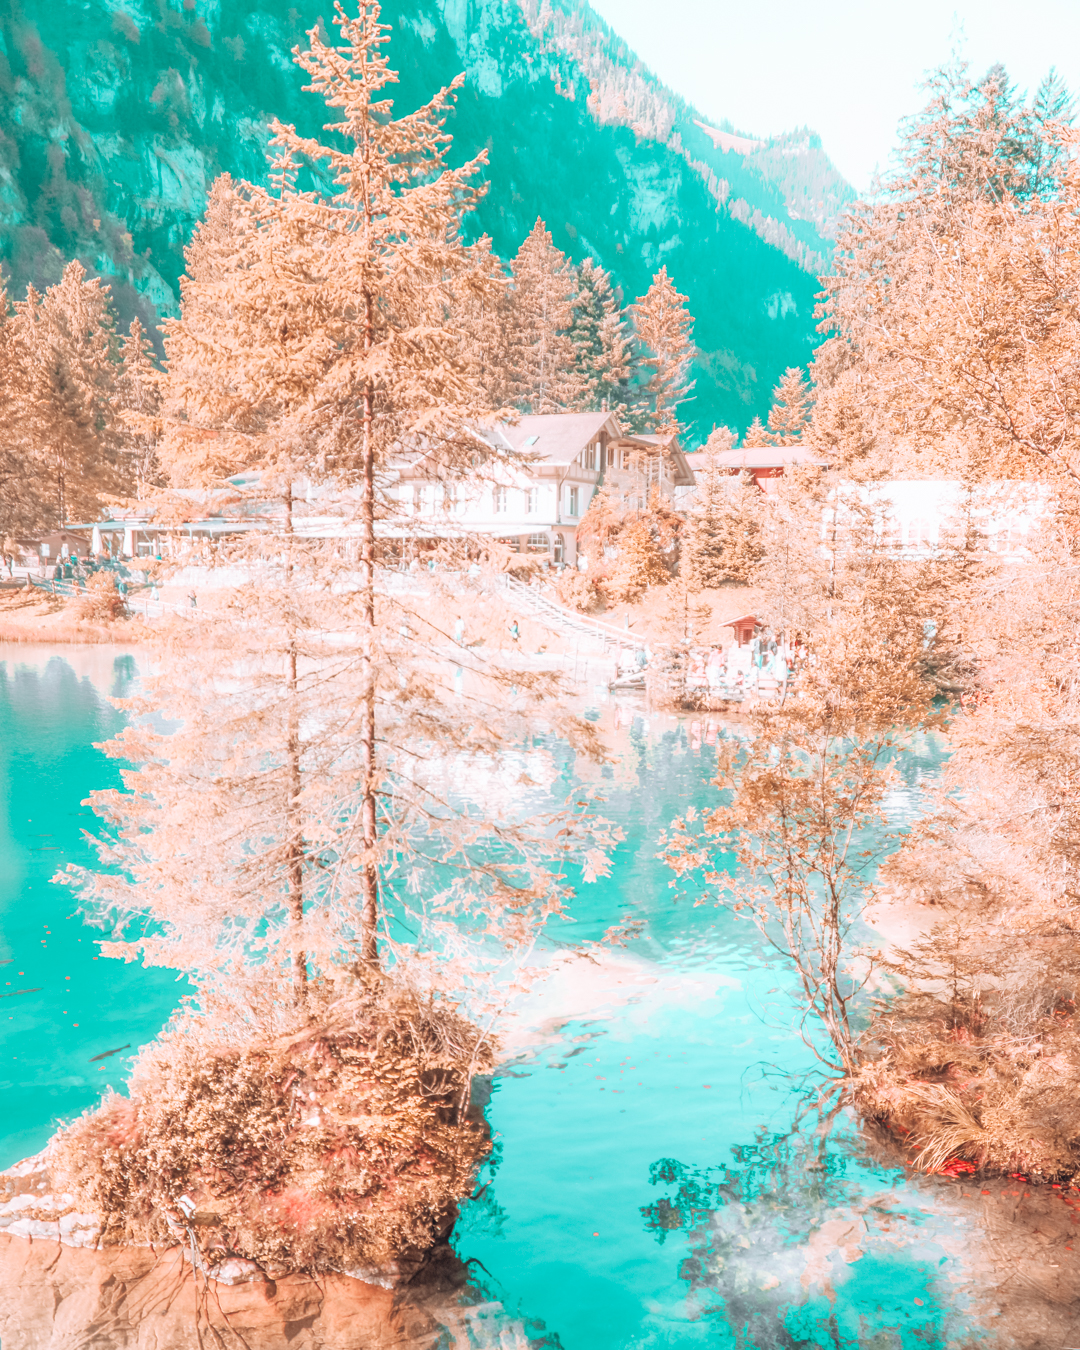 Blue water and trees at Blausee